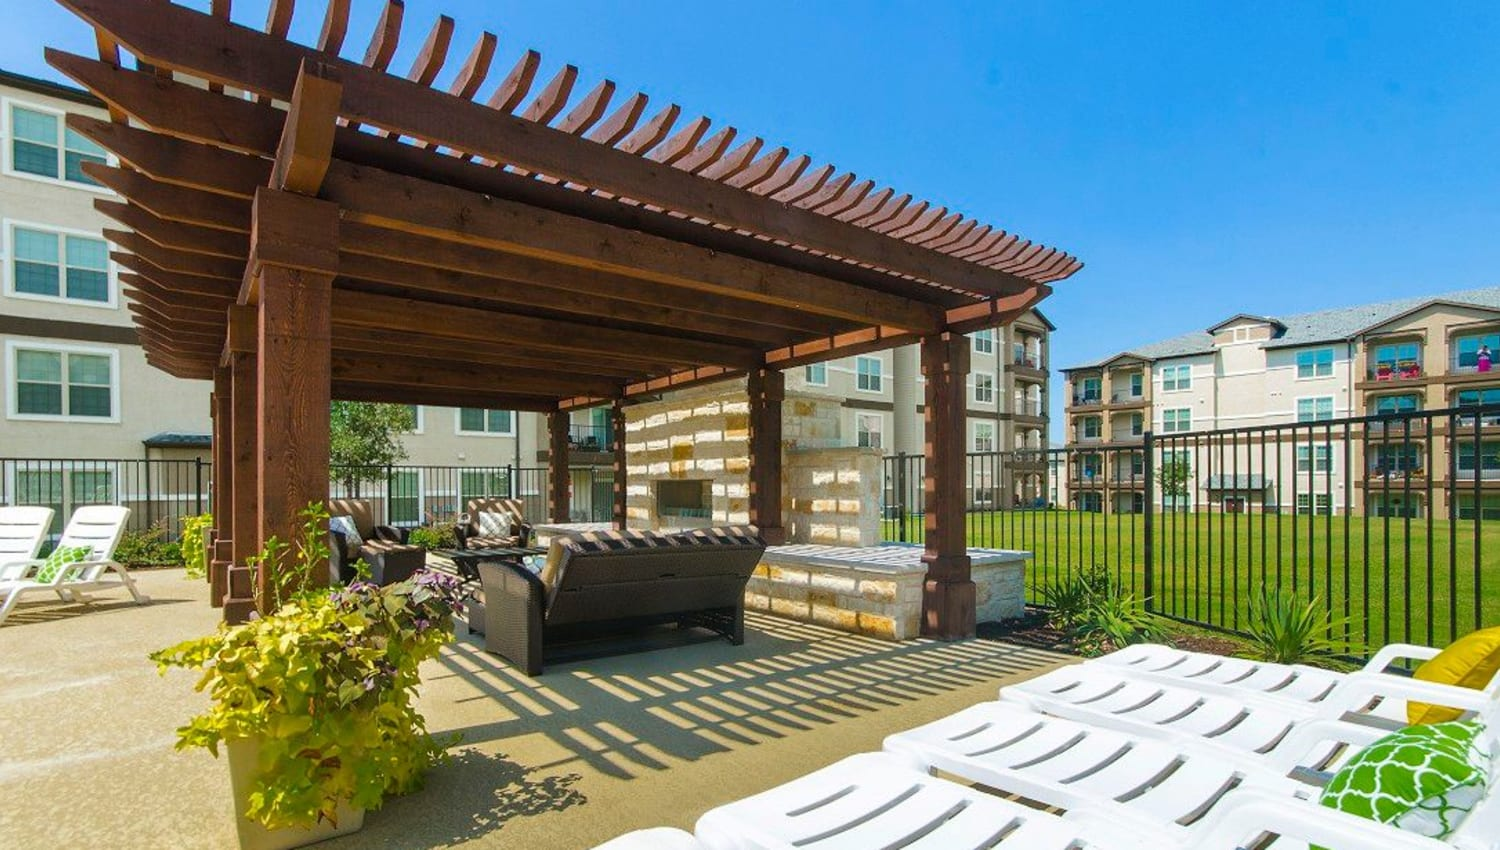 Pergola over an outdoor lounge area at Olympus Woodbridge in Sachse, Texas